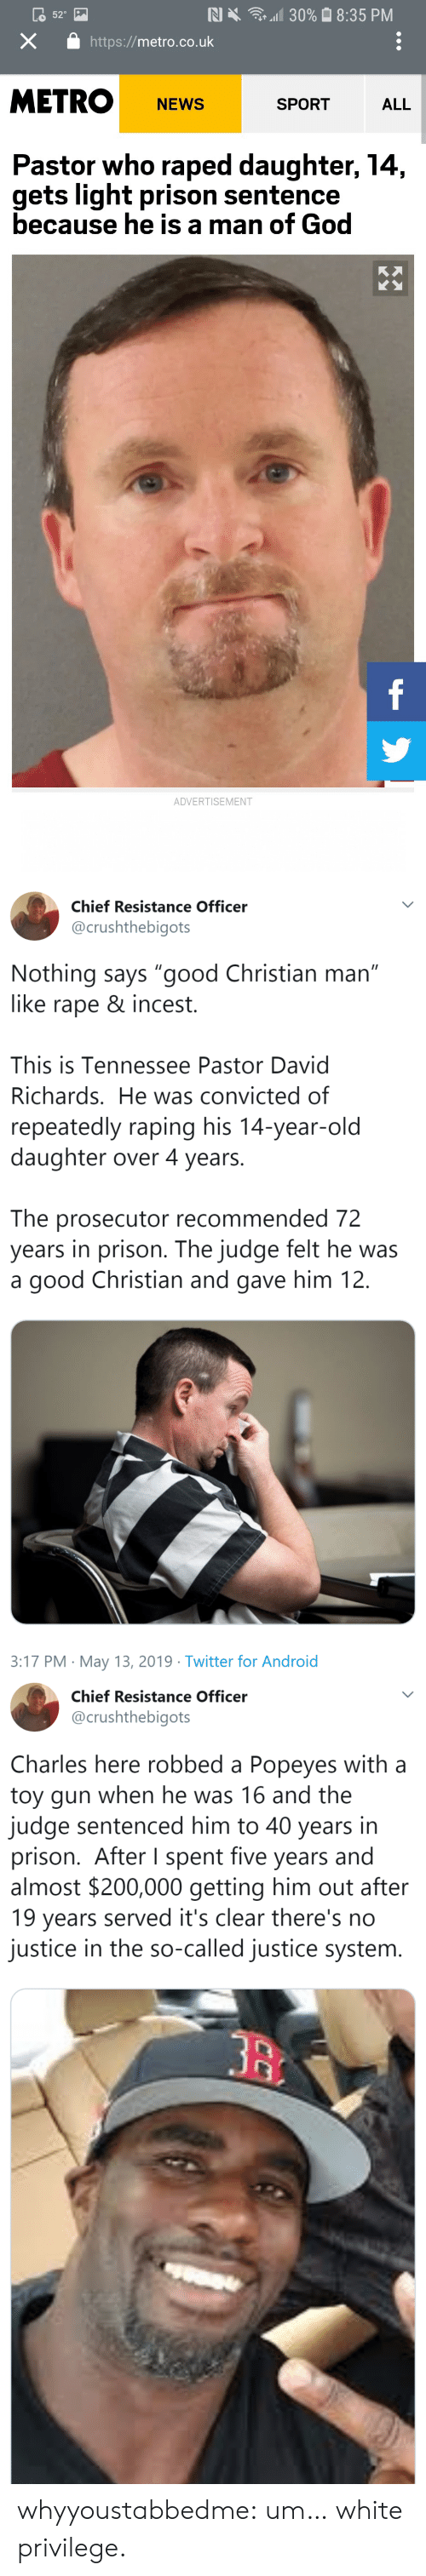 "richards: 30% 8:35 PM  N X  52  X  http://metro.co.uk  METRO  SPORT  NEWS  ALL  Pastor who raped daughter, 14,  gets light prison sentence  because he is a man of God  f  ADVERTISEMENT   Chief Resistance Officer  @crushthebigots  Nothing says ""good Christian man""  like rape & incest.  II  This is Tennessee Pastor David  Richards. He was convicted of  repeatedly raping his 14-year-old  daughter over 4 years.  The prosecutor recommended 72  years in prison. The judge felt he was  good Christian and gave him 12.  a  3:17 PM May 13, 2019 Twitter for Android   Chief Resistance Officer  @crushthebigots  Charles here robbed a Popeyes with a  toy gun when he was 16 and the  judge sentenced him to 40 years in  prison. After I spent five years and  almost $200,000 getting him out after  19 years served it's clear there's no  justice in the so-called justice system. whyyoustabbedme:  um… white privilege."